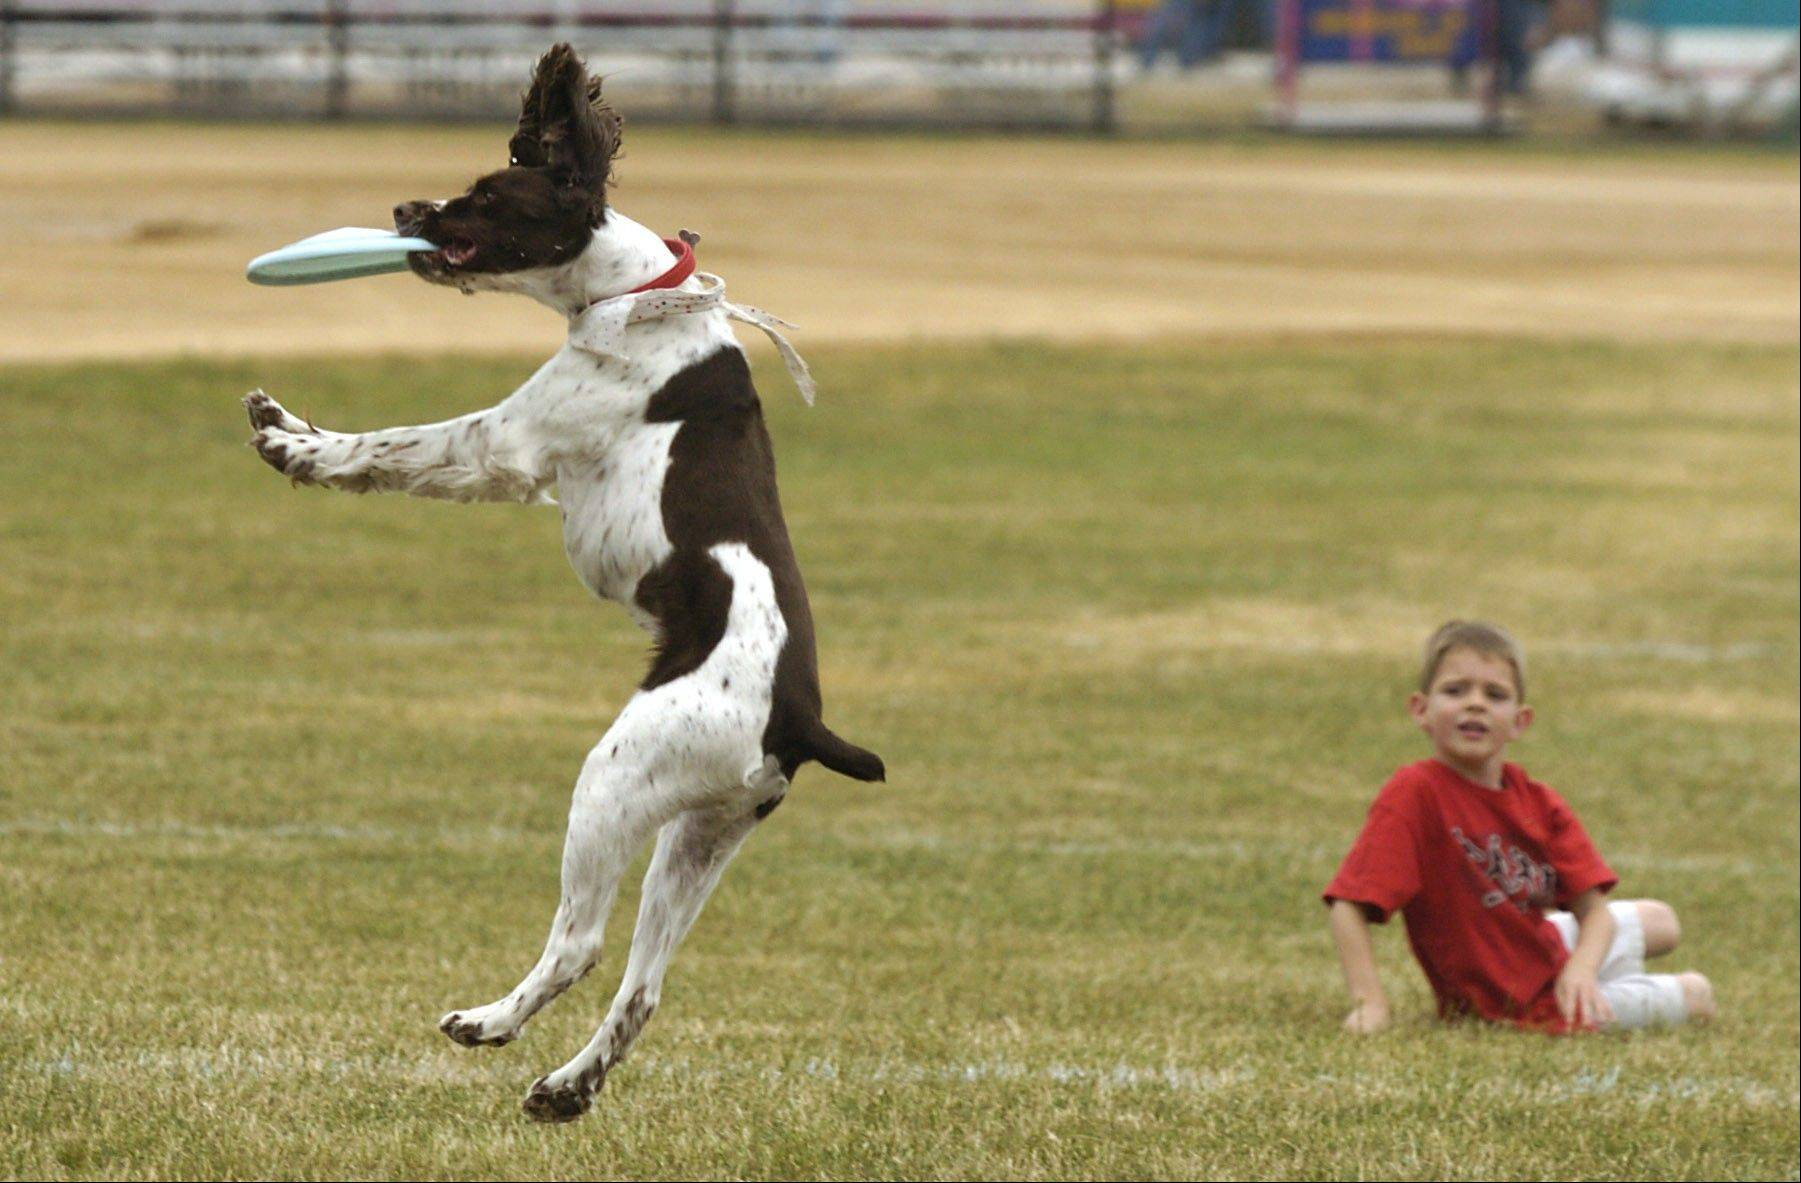 The dog Frisbee-catching contest is a highlight of the festival every year.